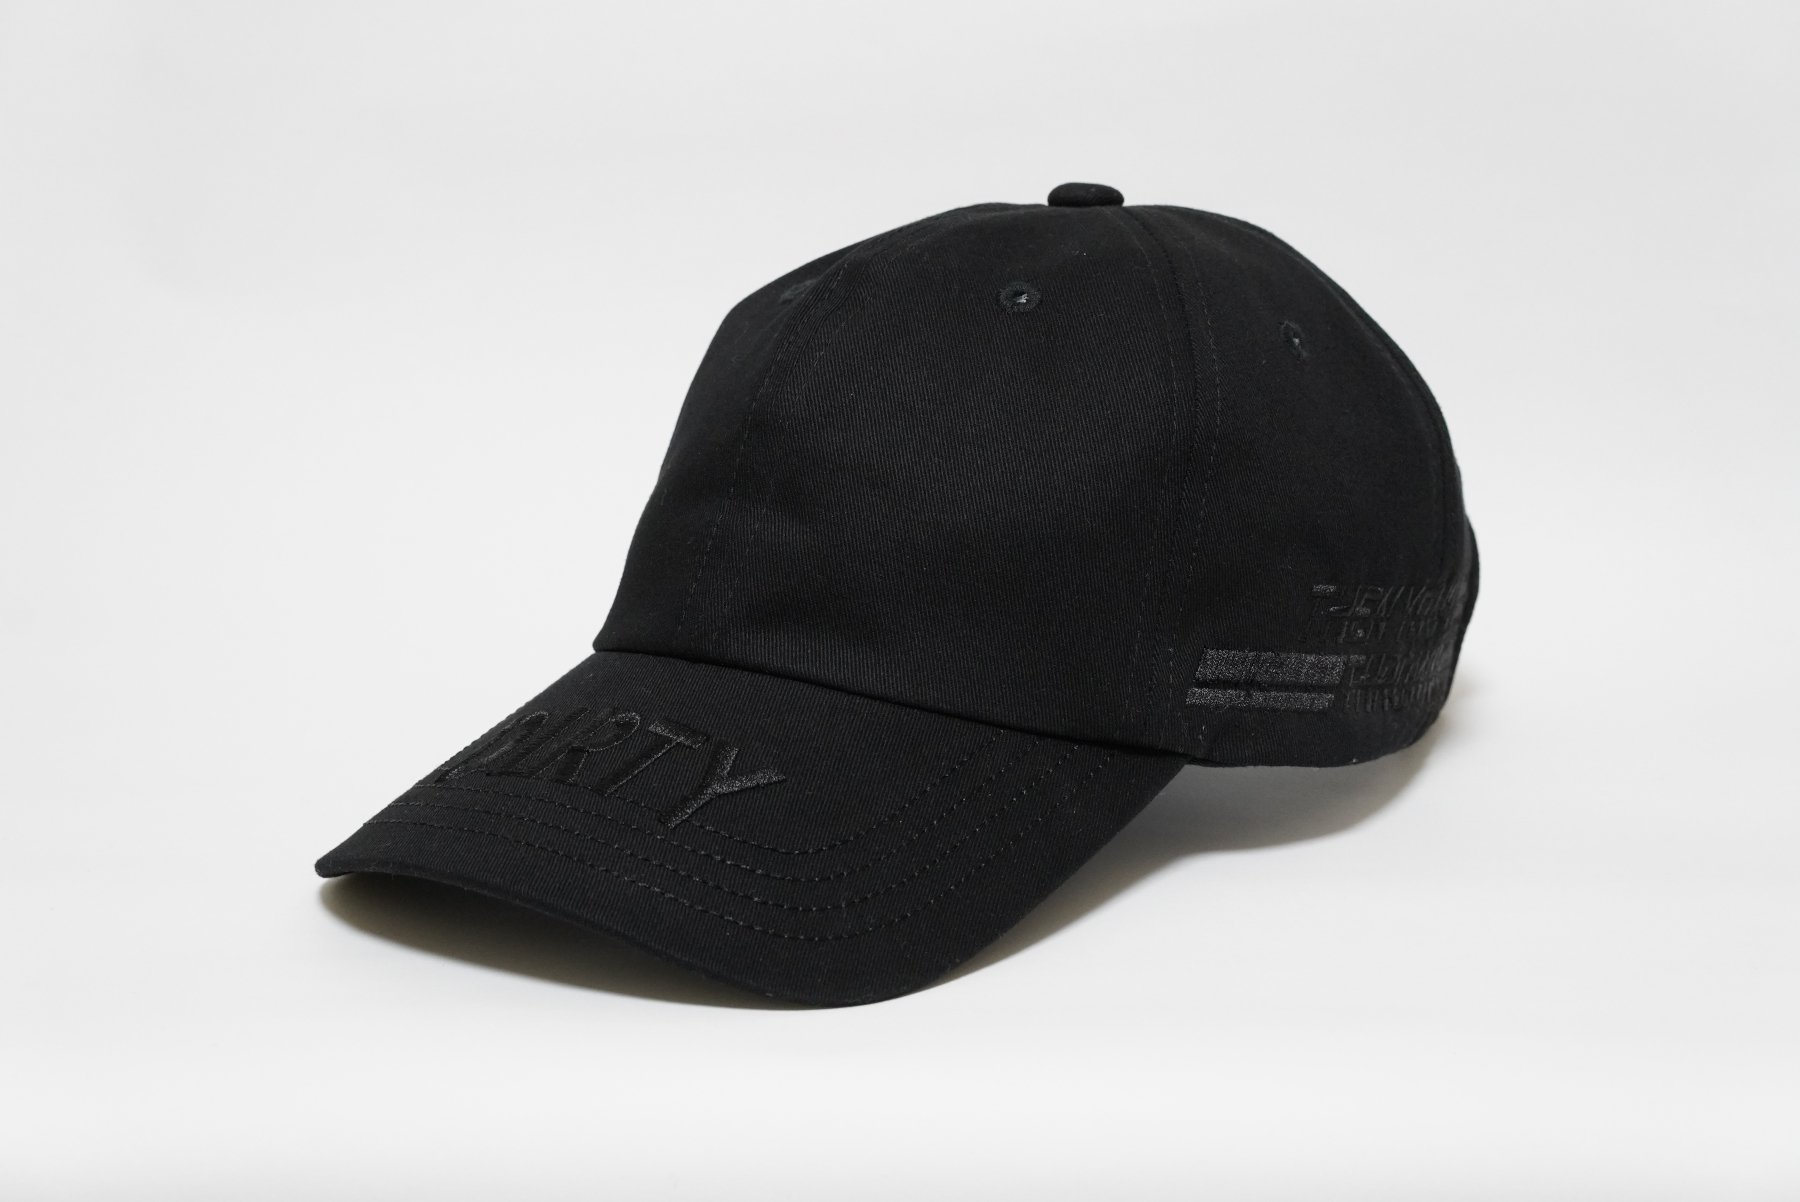 <img class='new_mark_img1' src='//img.shop-pro.jp/img/new/icons14.gif' style='border:none;display:inline;margin:0px;padding:0px;width:auto;' />2019 Winter collection CAP